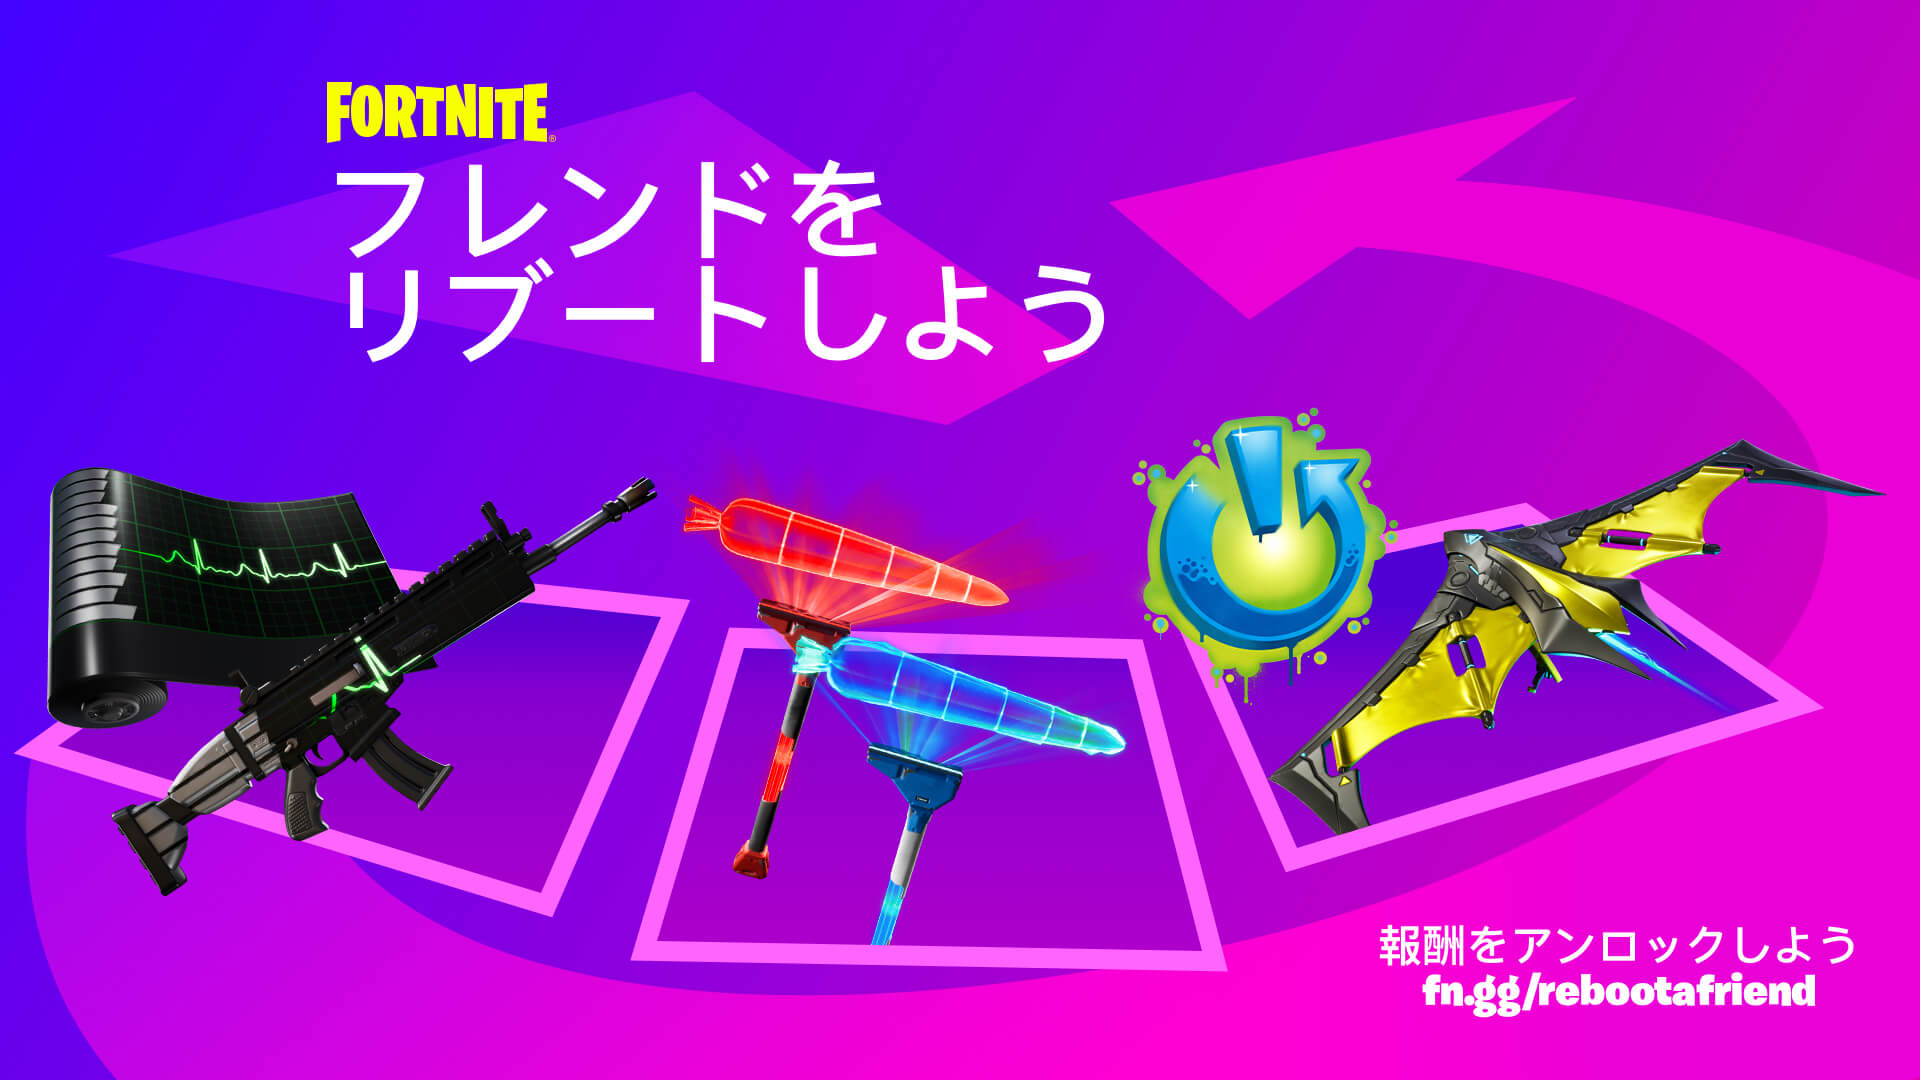 Fortnite Reboot A Friend Rewards JP